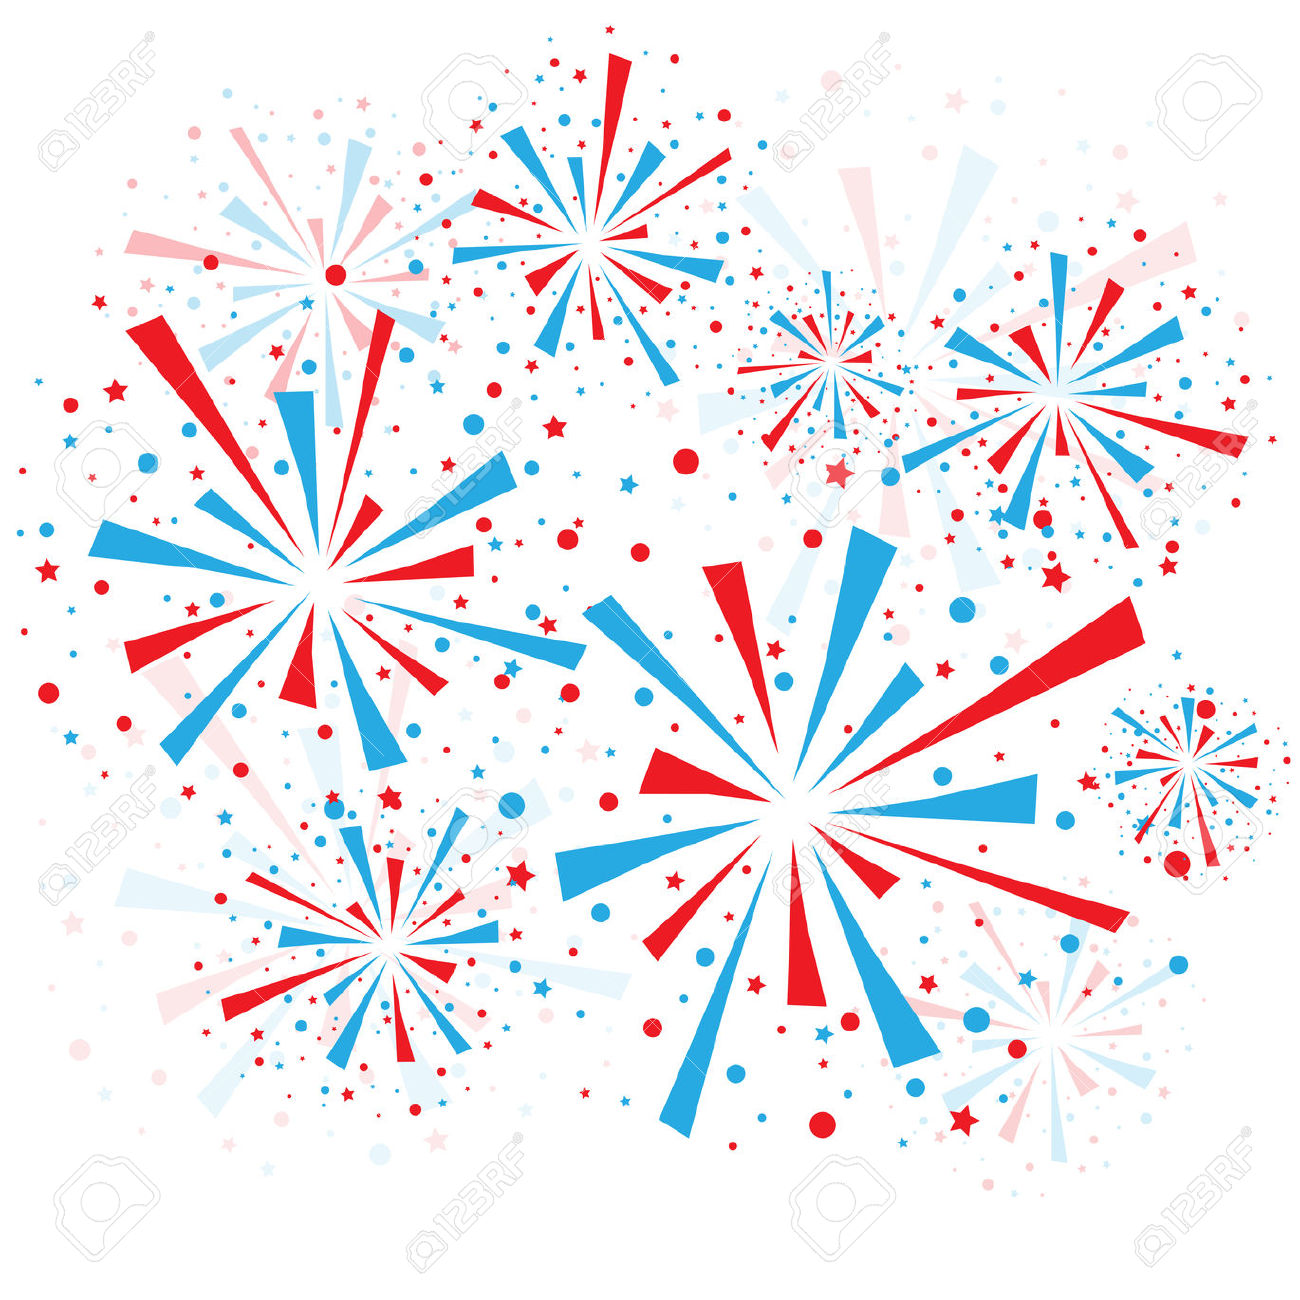 hight resolution of red white and blue fireworks clipart